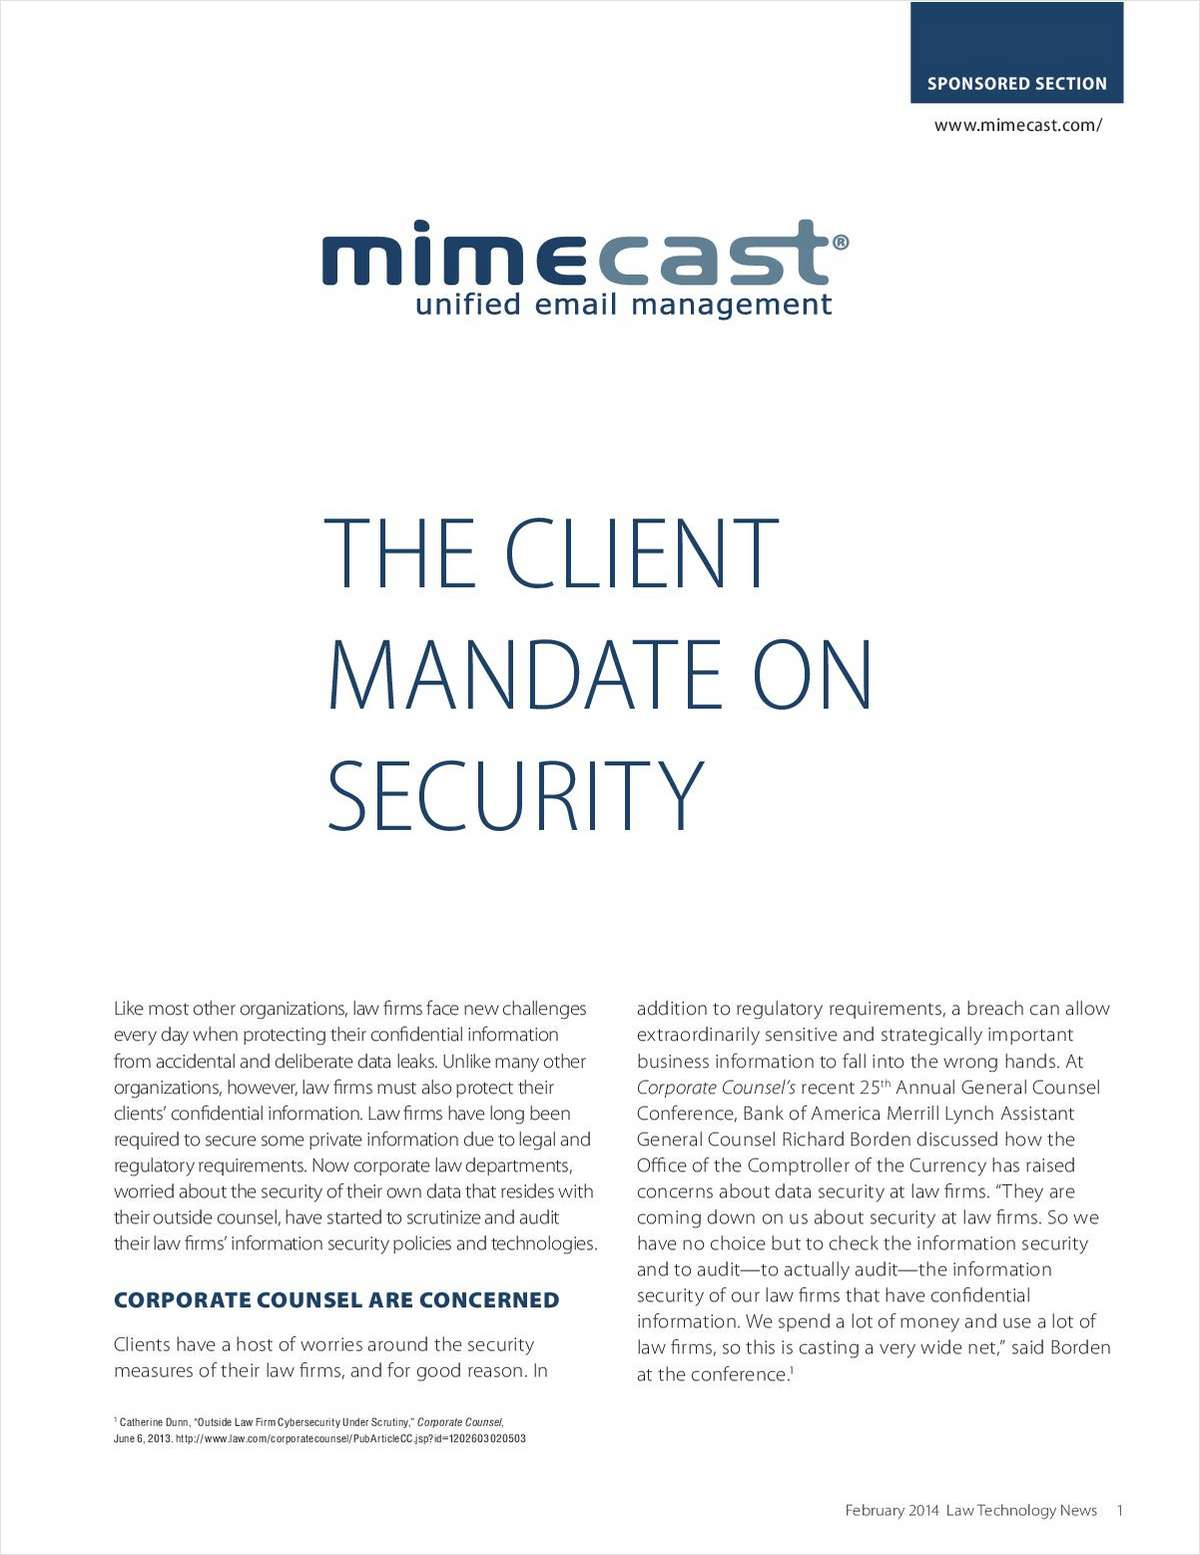 The Client Mandate on Security